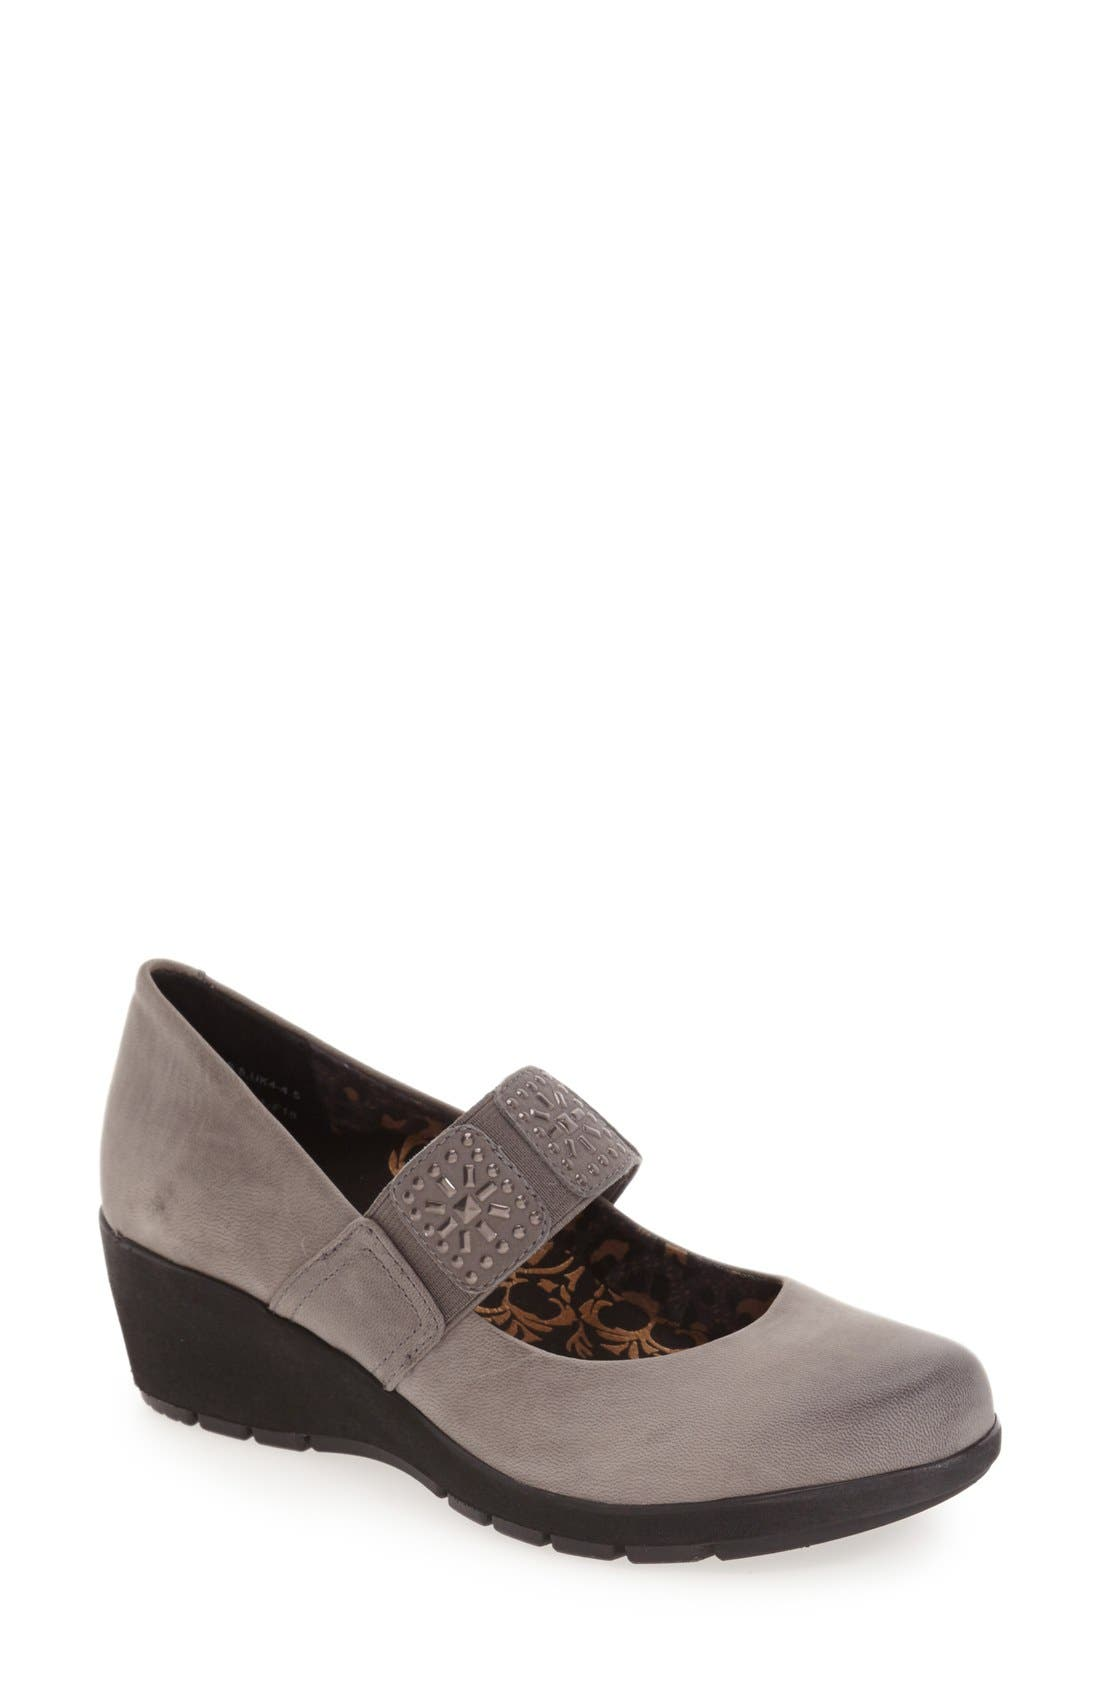 AETREX 'Elaine' Mary Jane Wedge